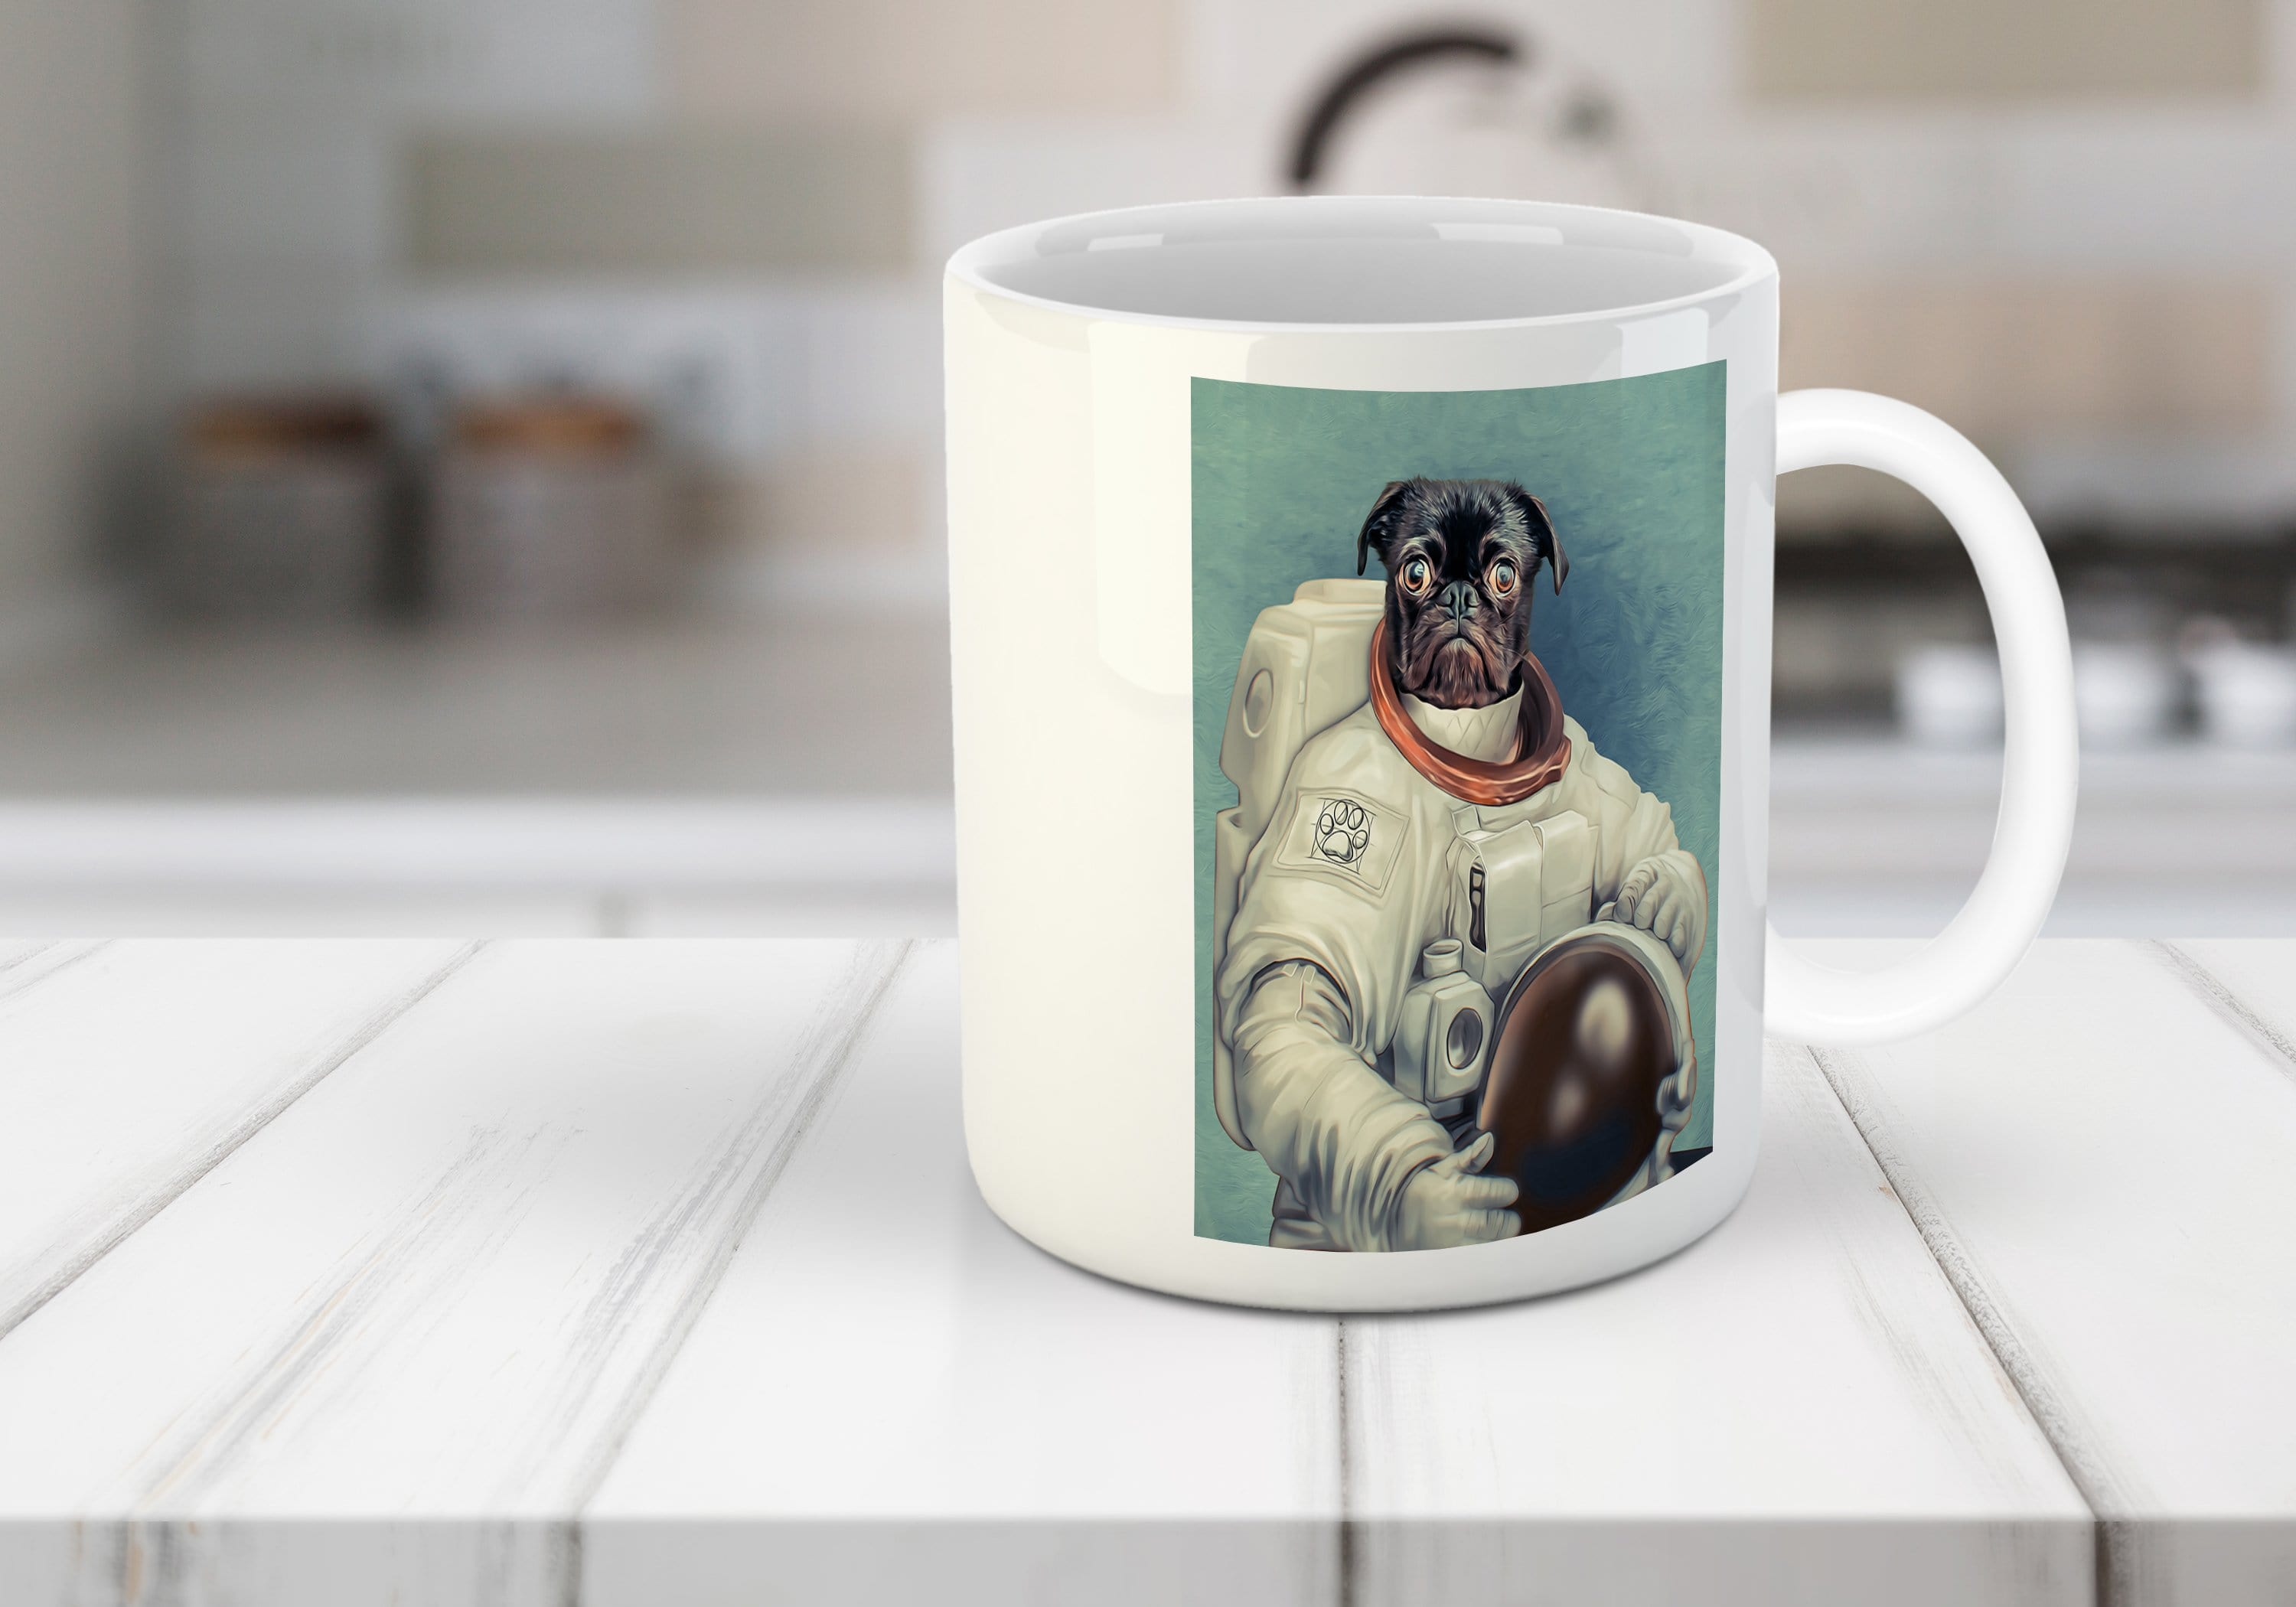 The Astronaut Custom Pet Mug